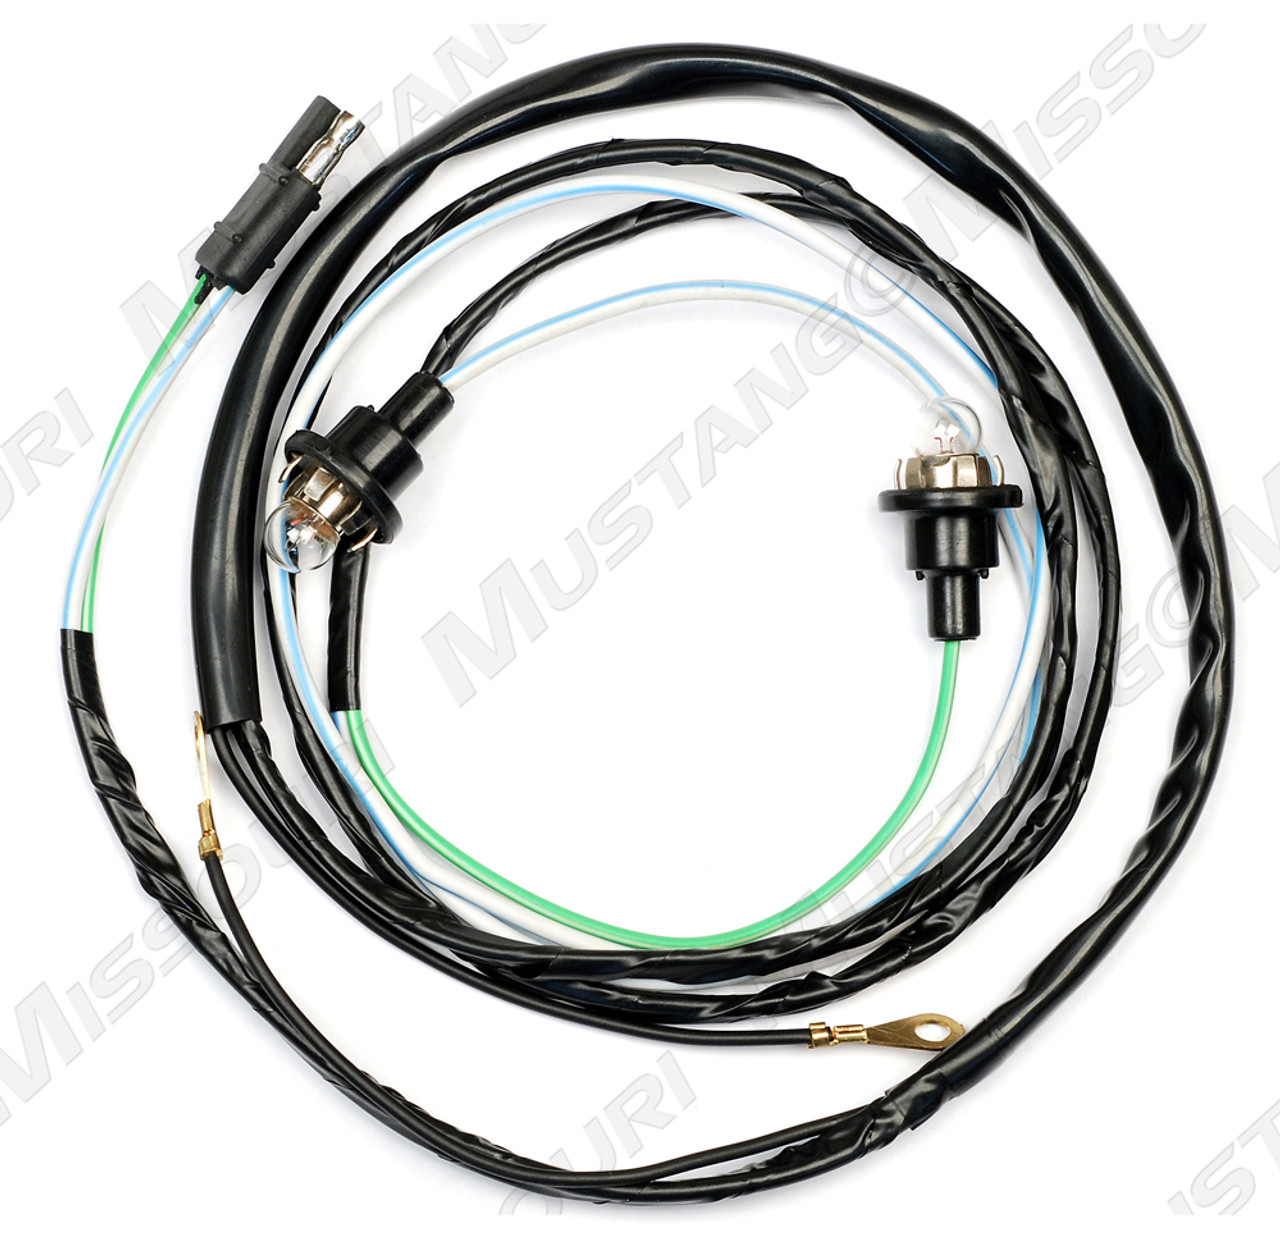 1967 1968 ford mustang hood turn signal wiring harness  [ 1000 x 969 Pixel ]